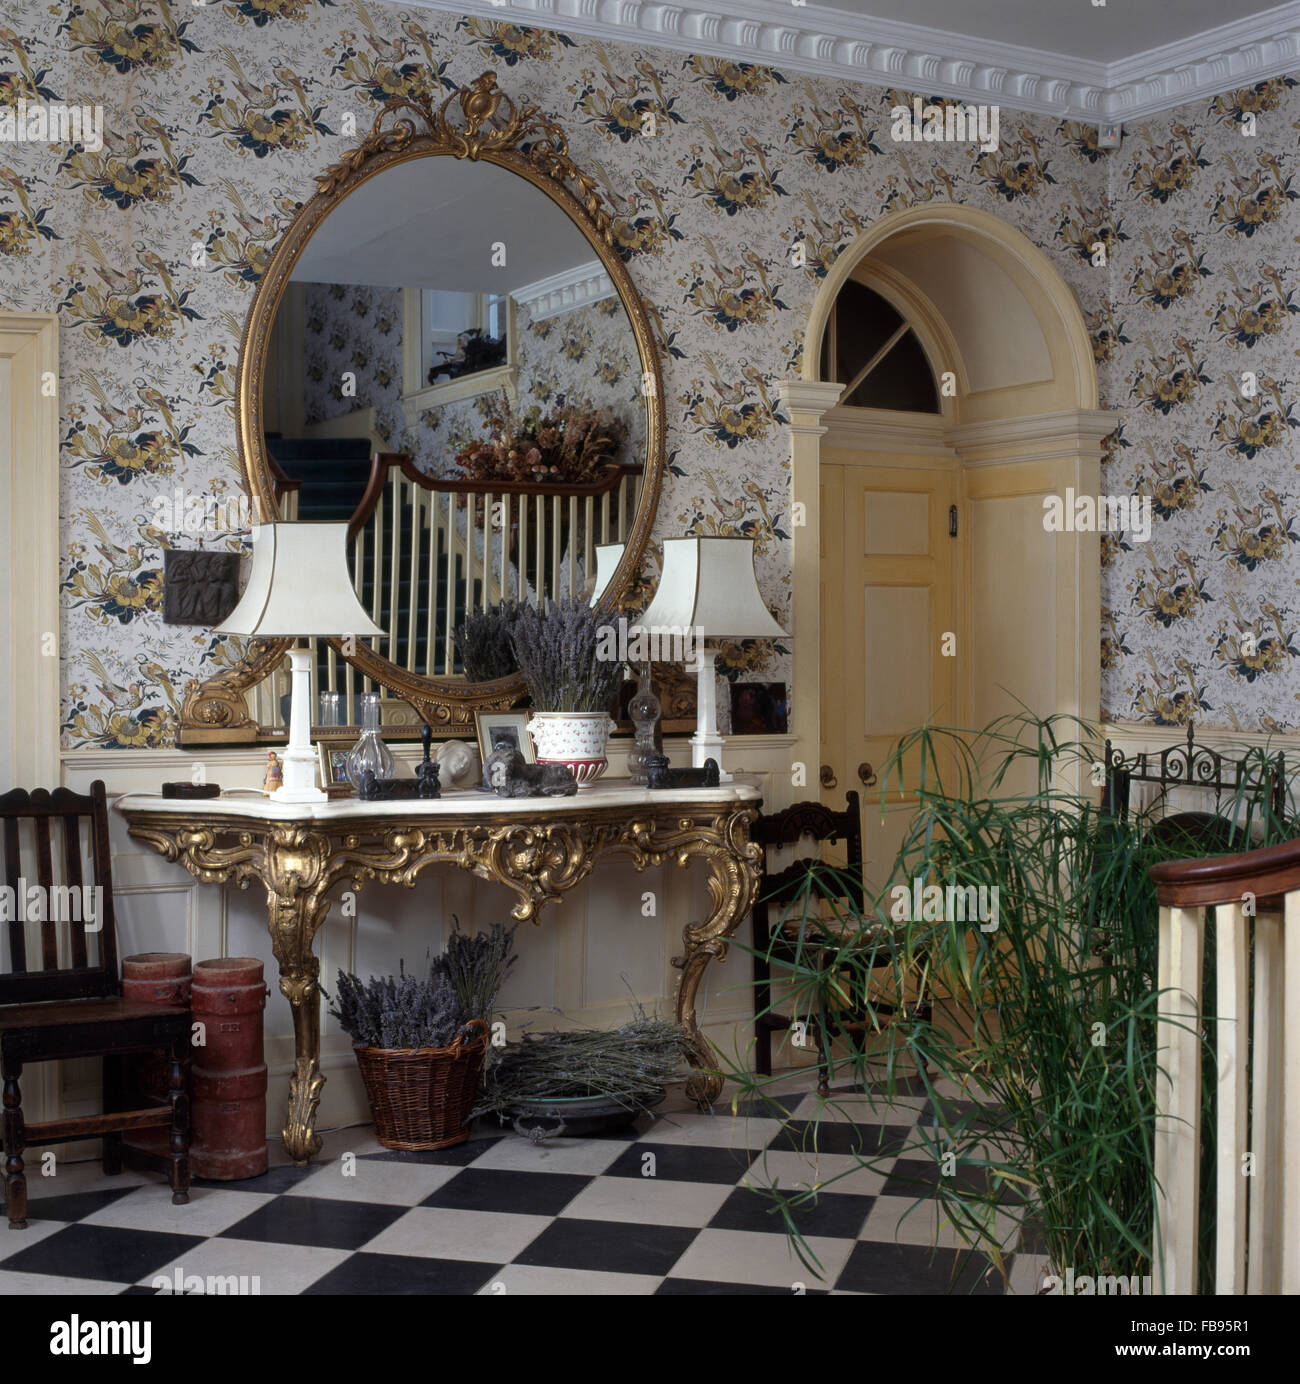 Large Oval Antique Mirror Above Gilt Antique Console Table With White Lamps  In Georgian Hall With Floral Wallpaper